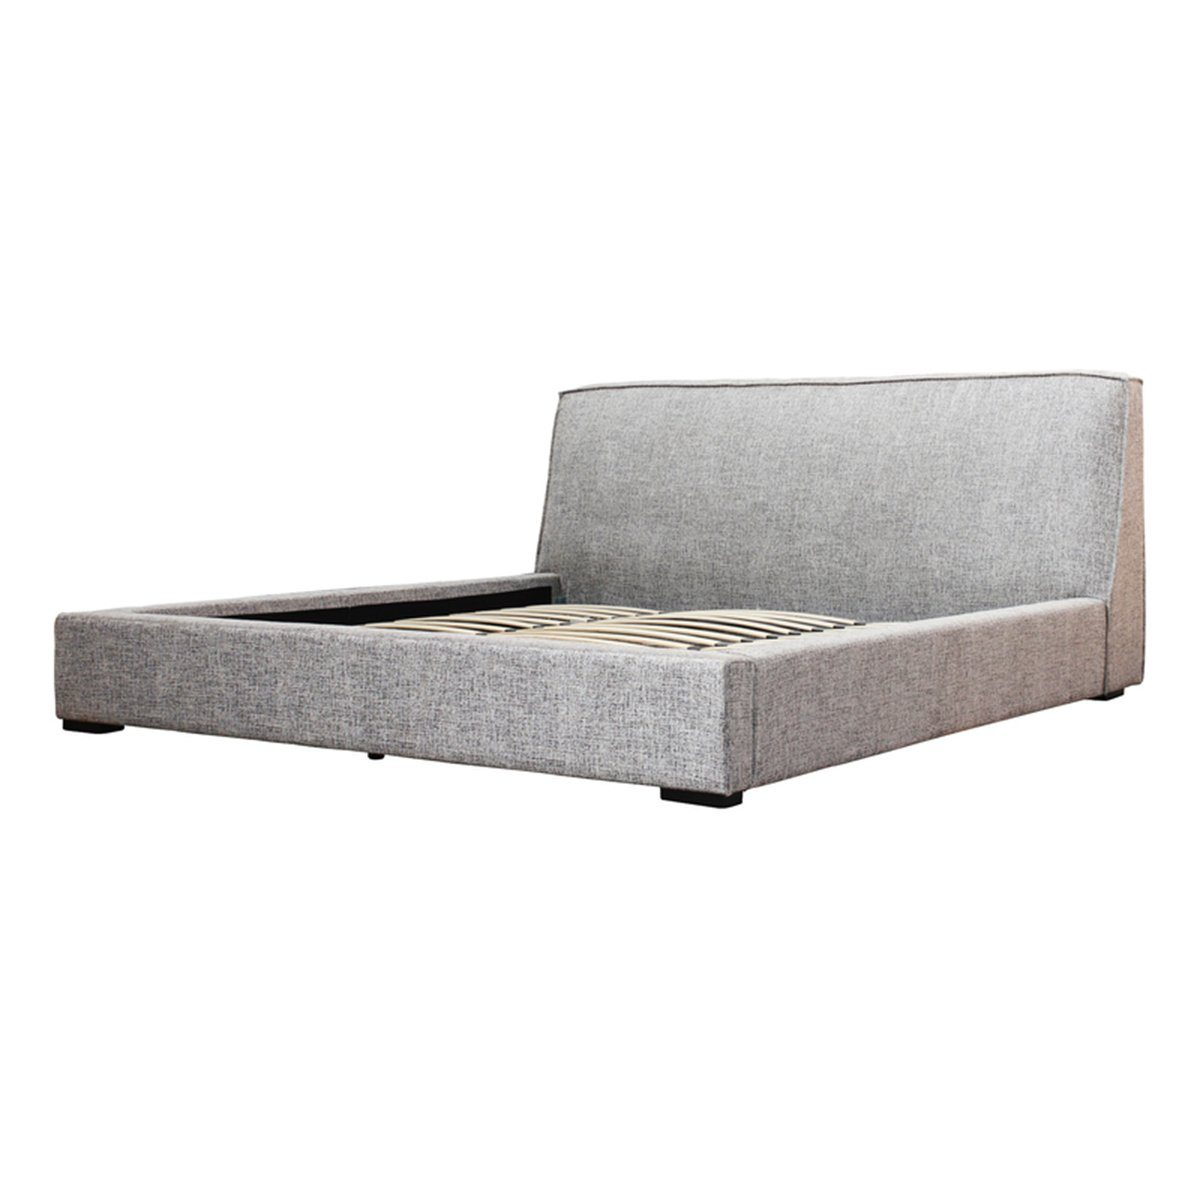 KING BED - TWEED GREY FABRIC - Showhome Furniture